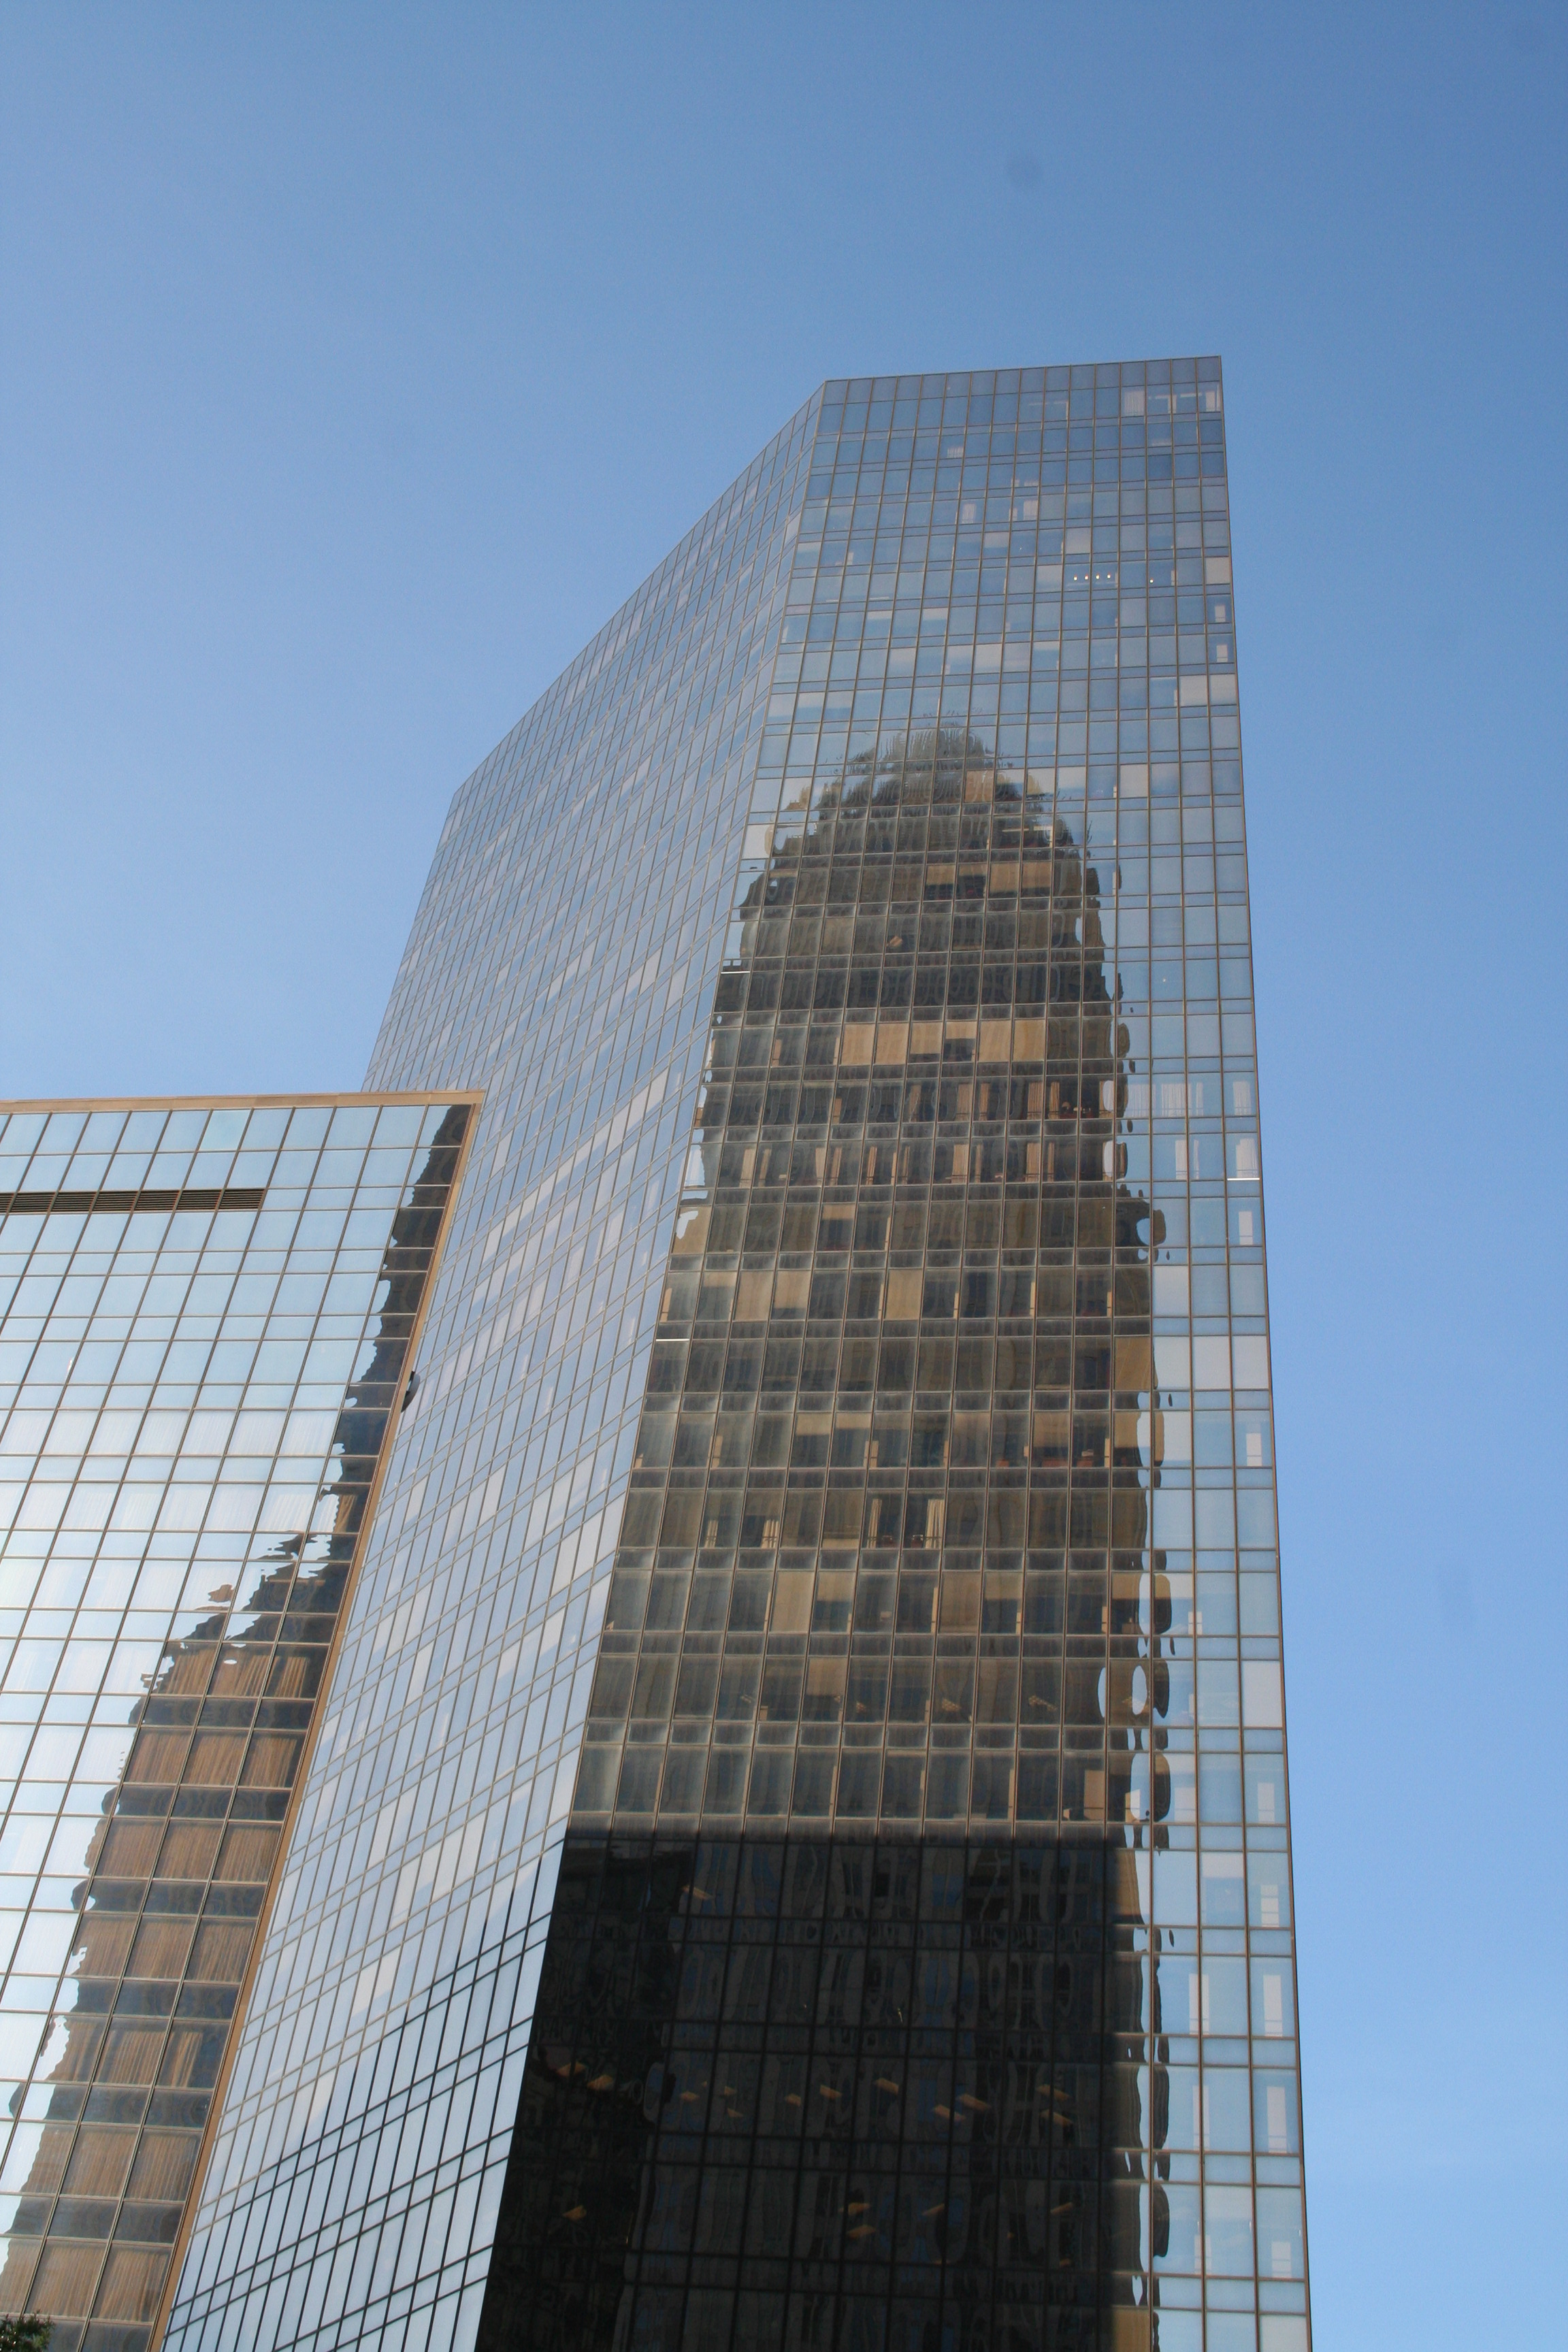 Bank_of_America_Plaza_with_Bank_of_America_Corporate_Center_reflection